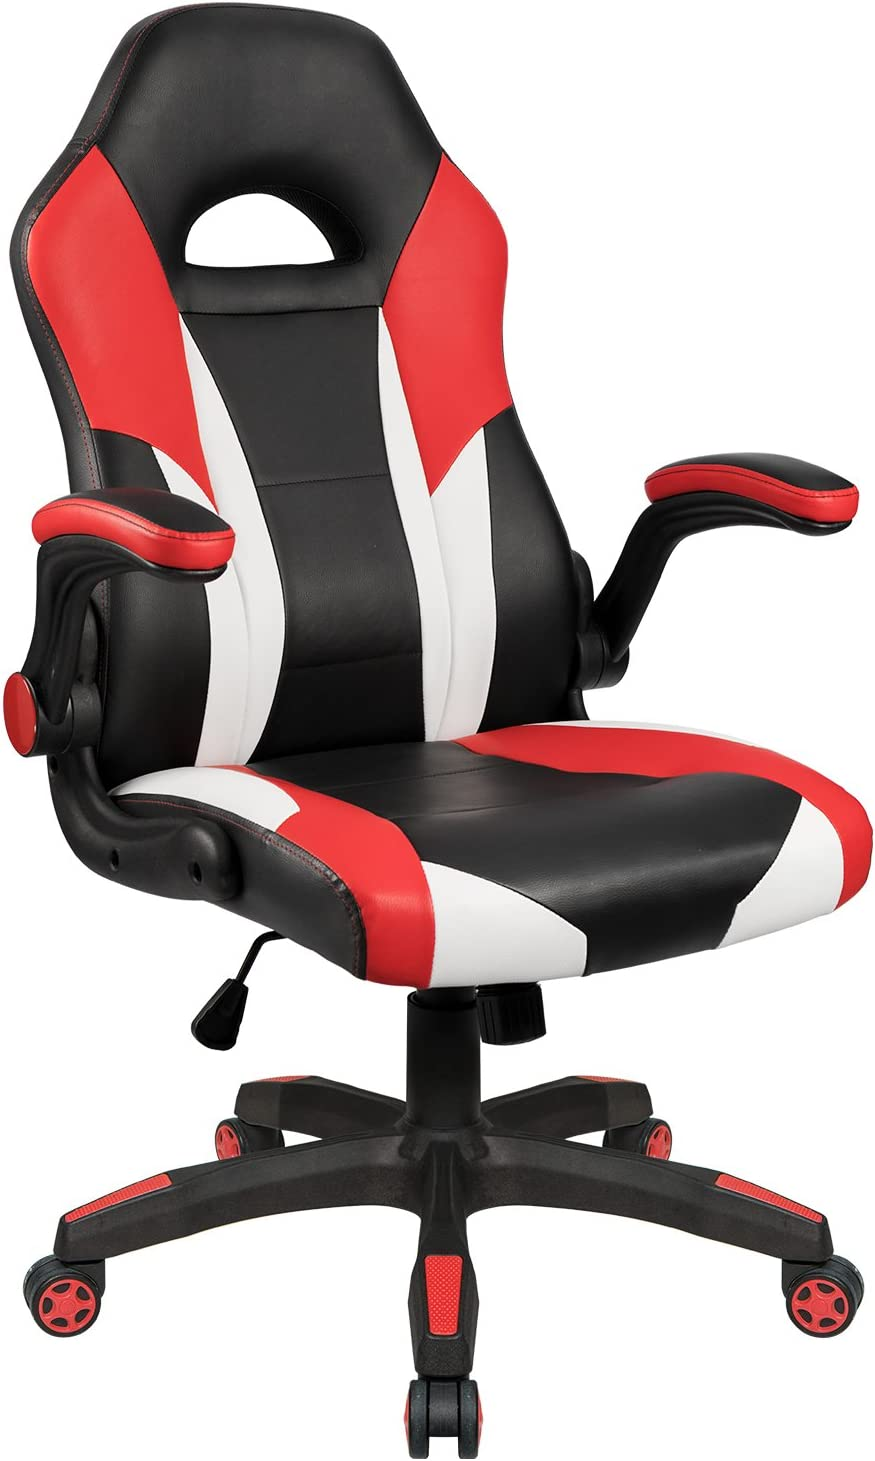 Homall Gaming Chair Office Computer Chair Racing Desk Chair Ergonomic High  Back Adjustable Swivel Chair PU Leather Executive Chair for Adults with